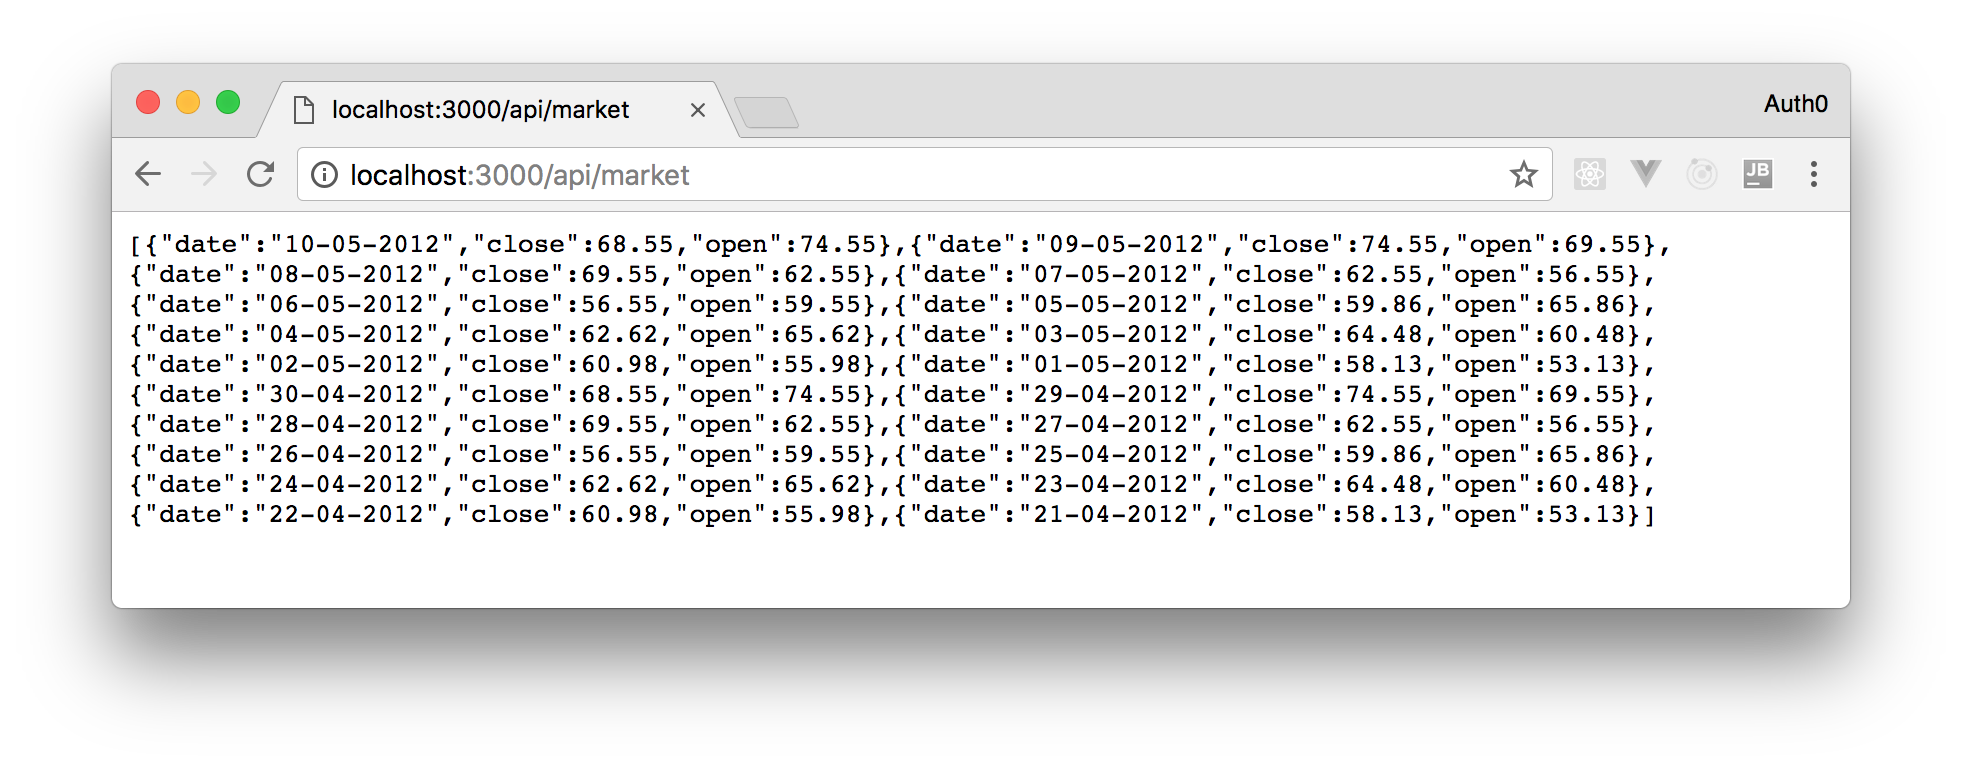 Fake market data to show on the real-time Angular application.